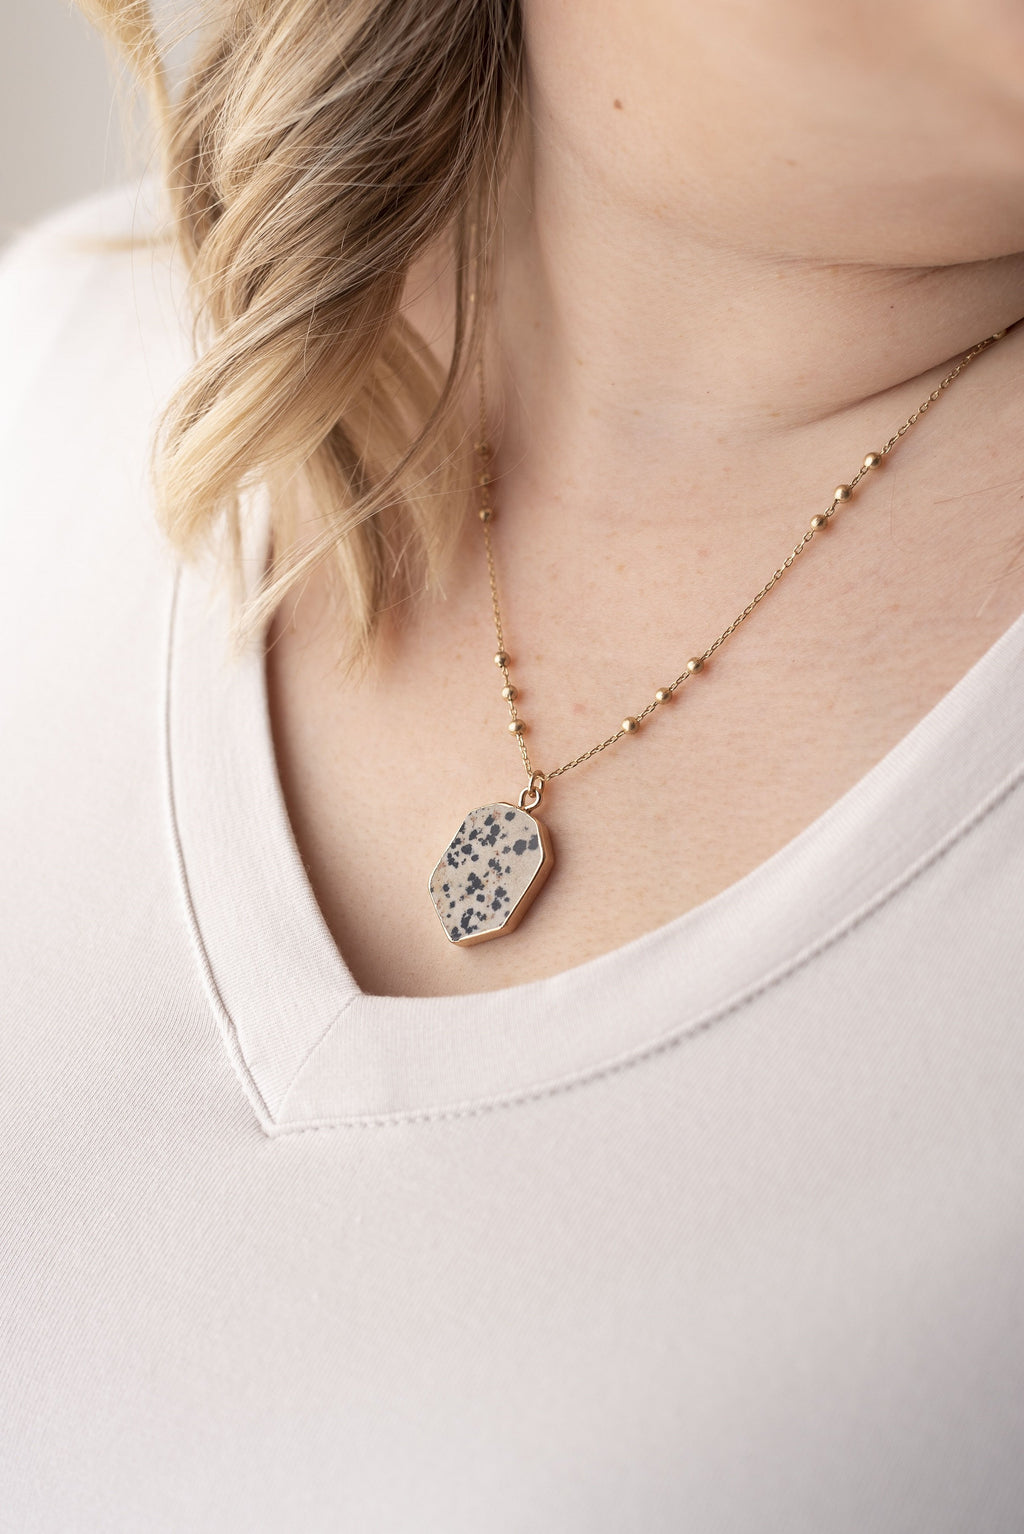 Natural Stone Necklace in Dalmatian - Boutique 1780